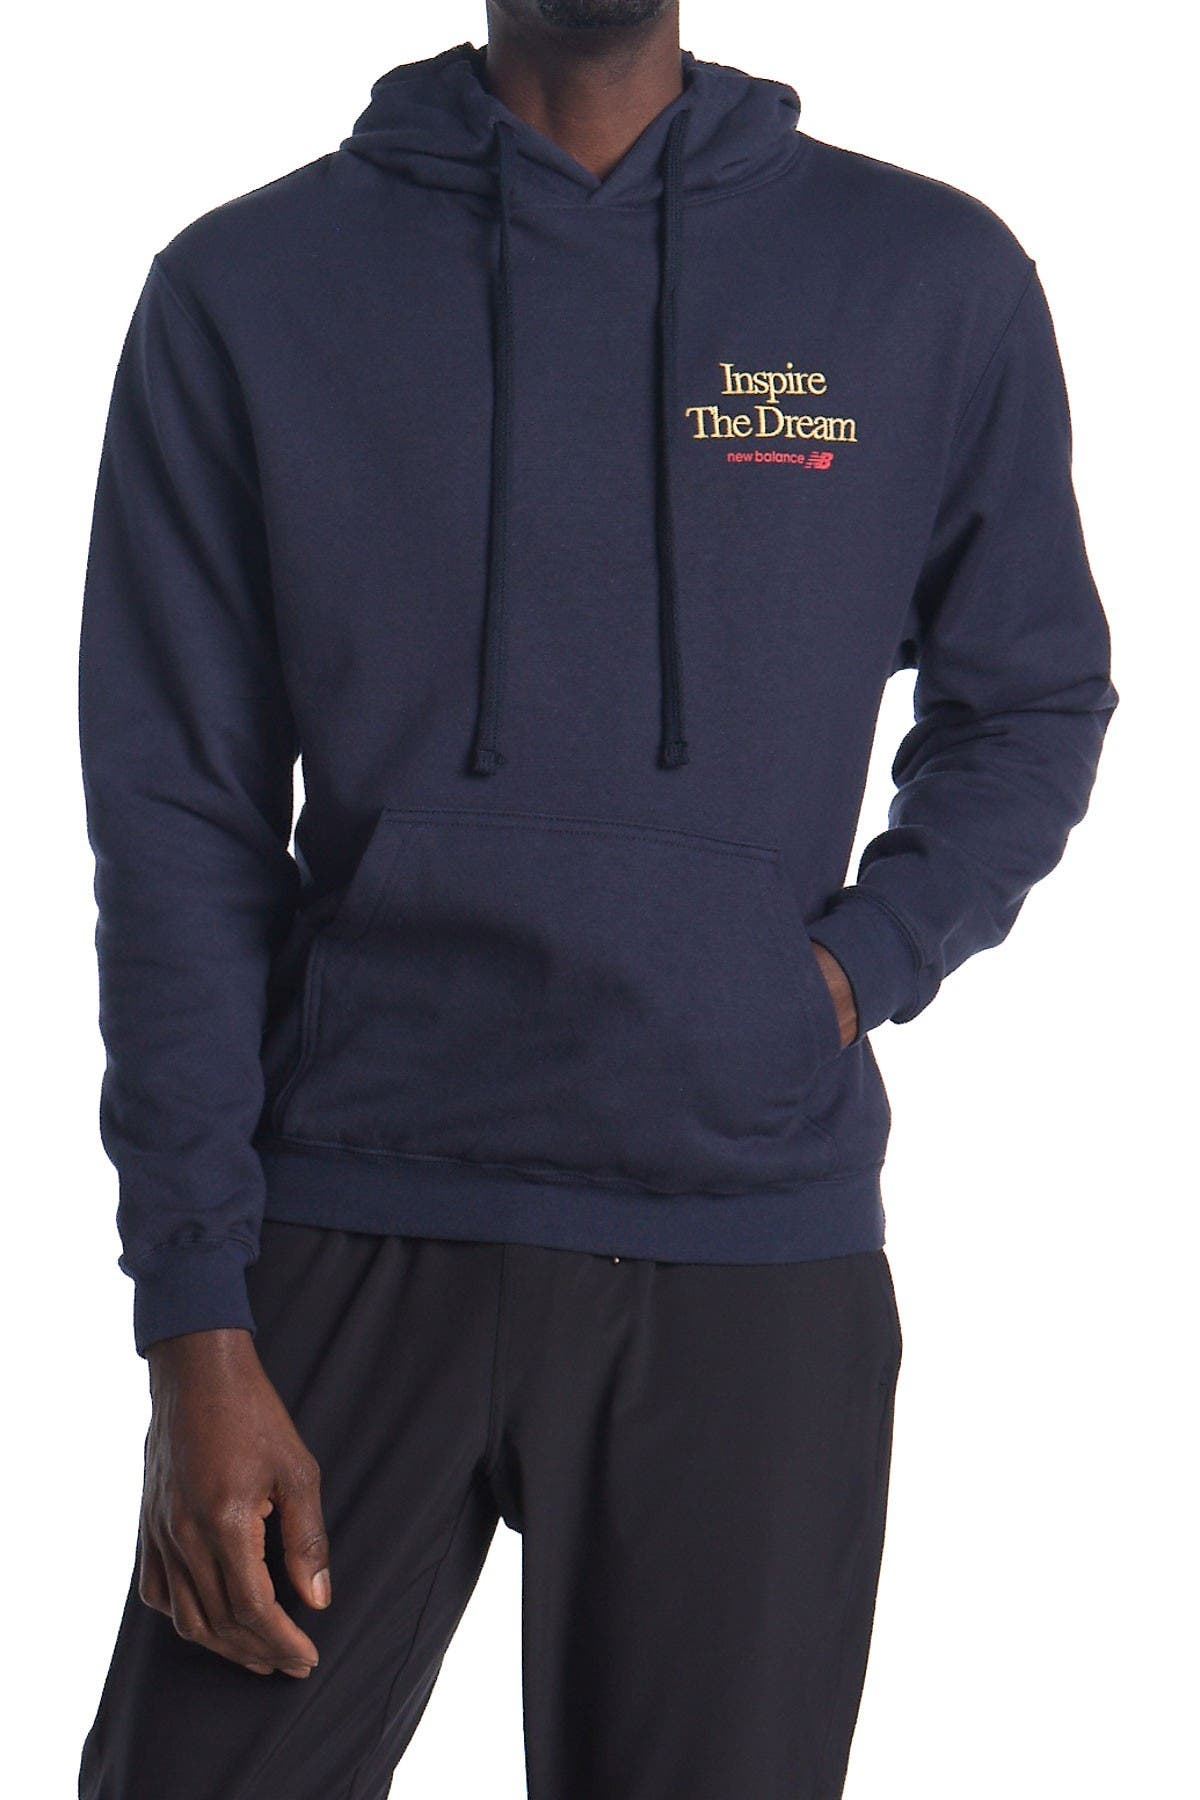 Image of New Balance Inspire the Dream Hoodie